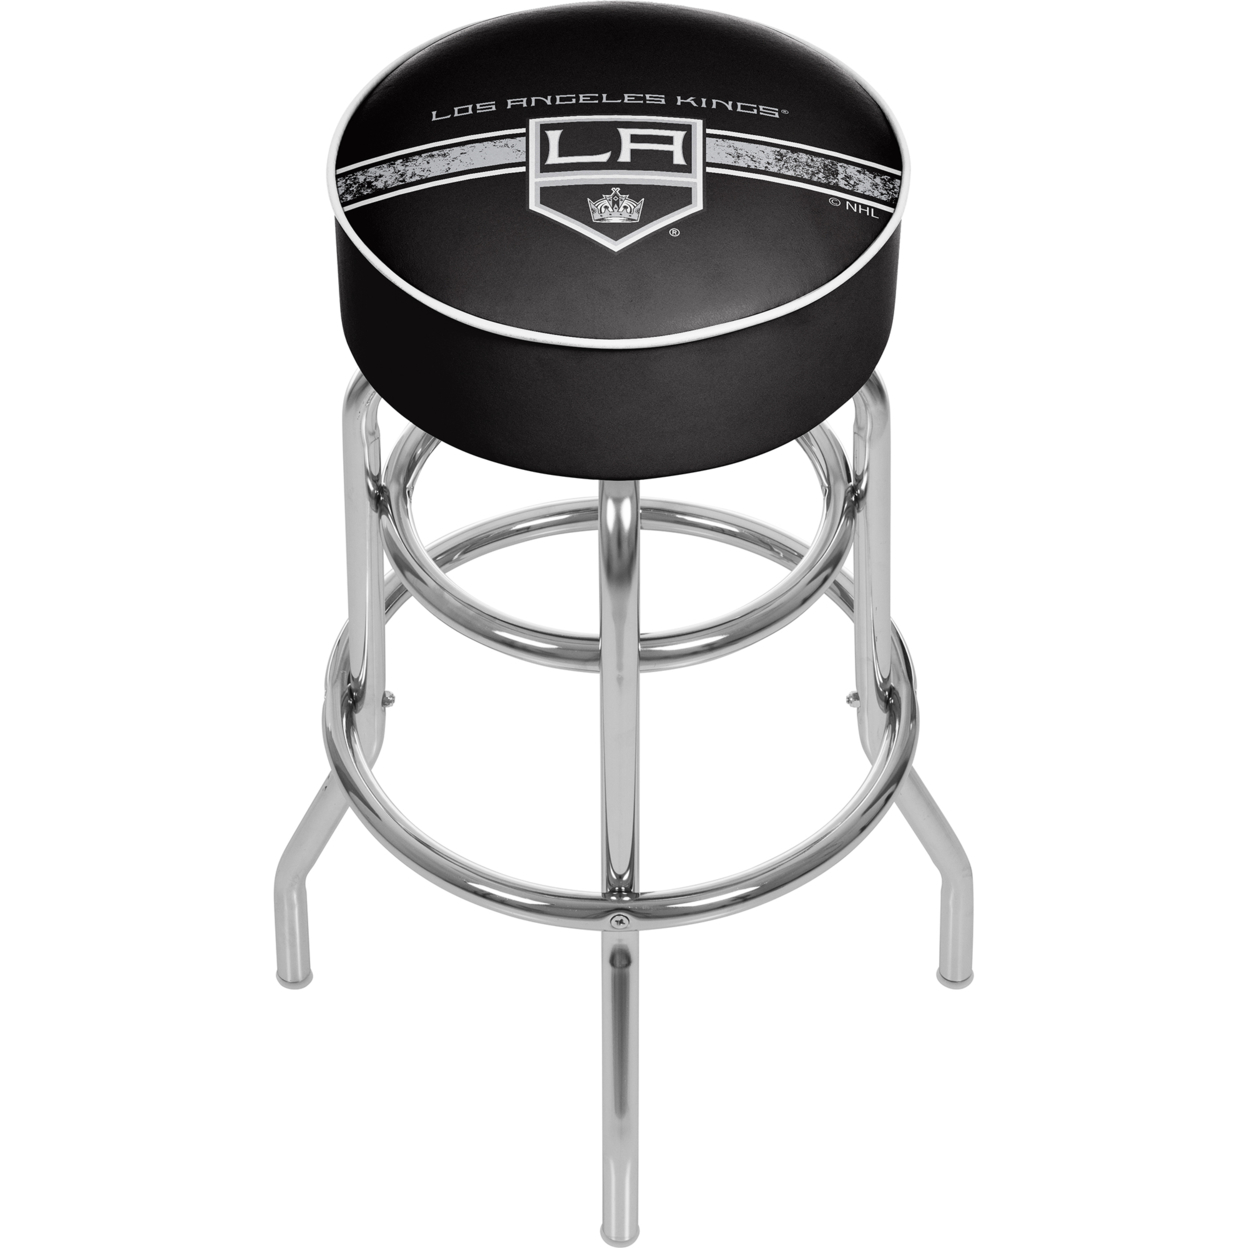 NHL Chrome Padded Swivel Bar Stool 30 Inches High - Los Angeles Kings майка классическая printio los angeles kings nhl usa